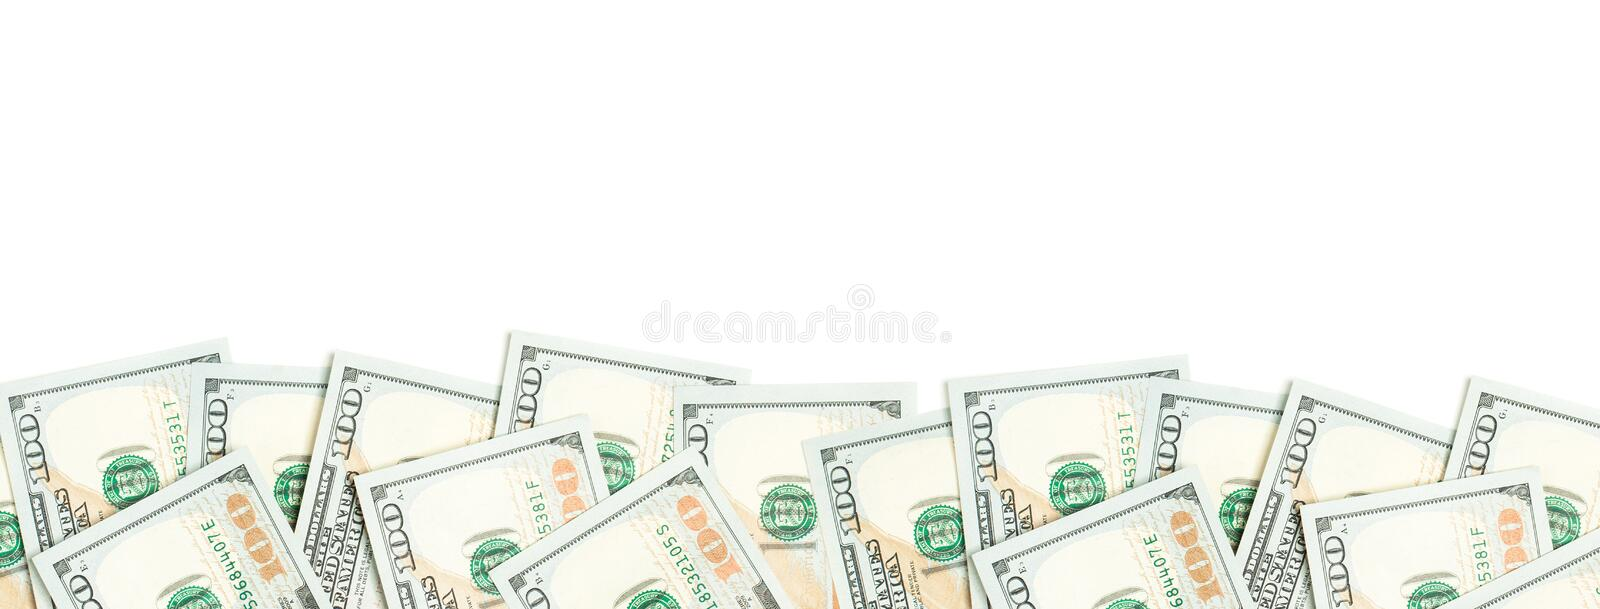 US dollar border isolated on white background. 100 bills money cash.  stock photo